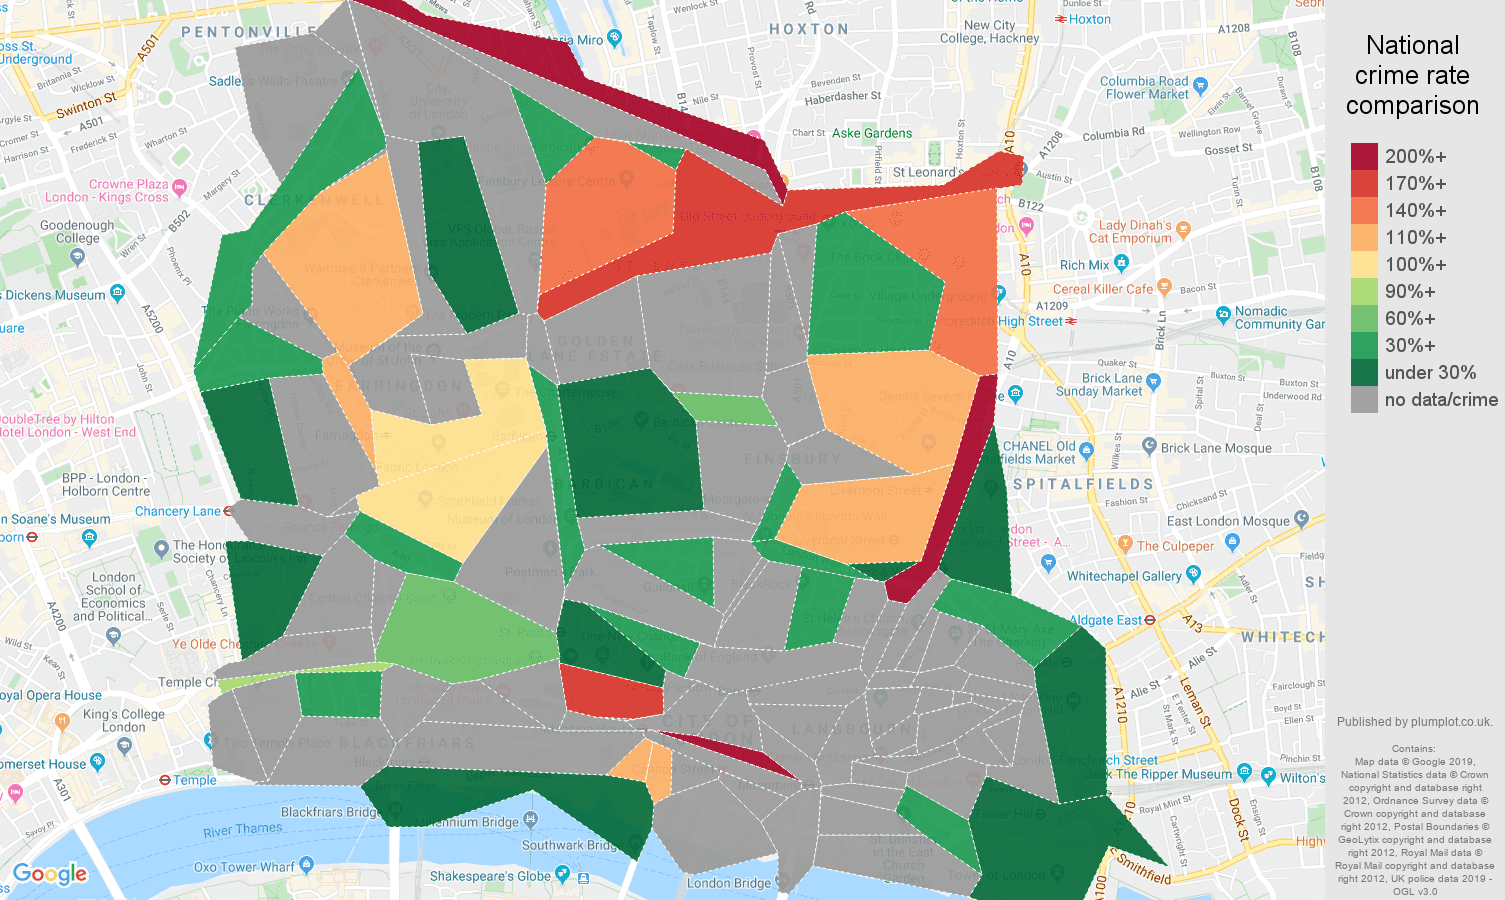 East Central London possession of weapons crime rate comparison map